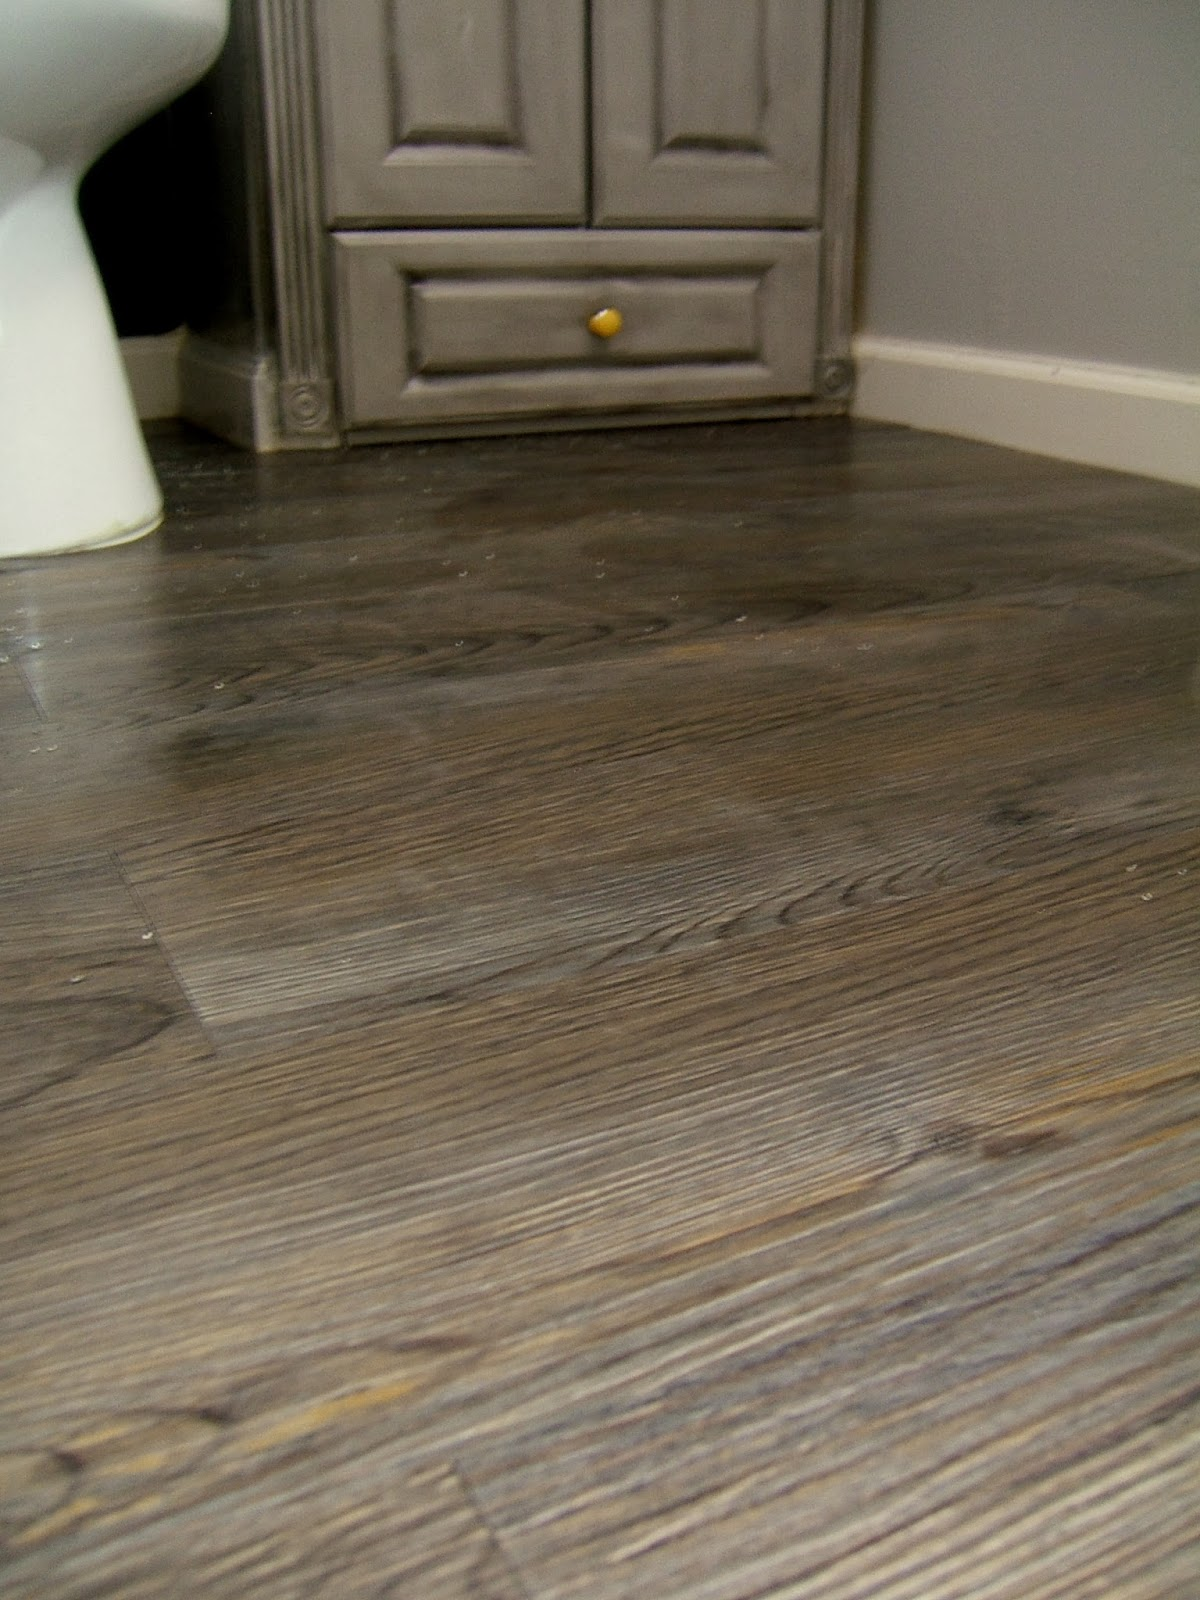 Wood Look Peel And Stick Flooring 003 JPG